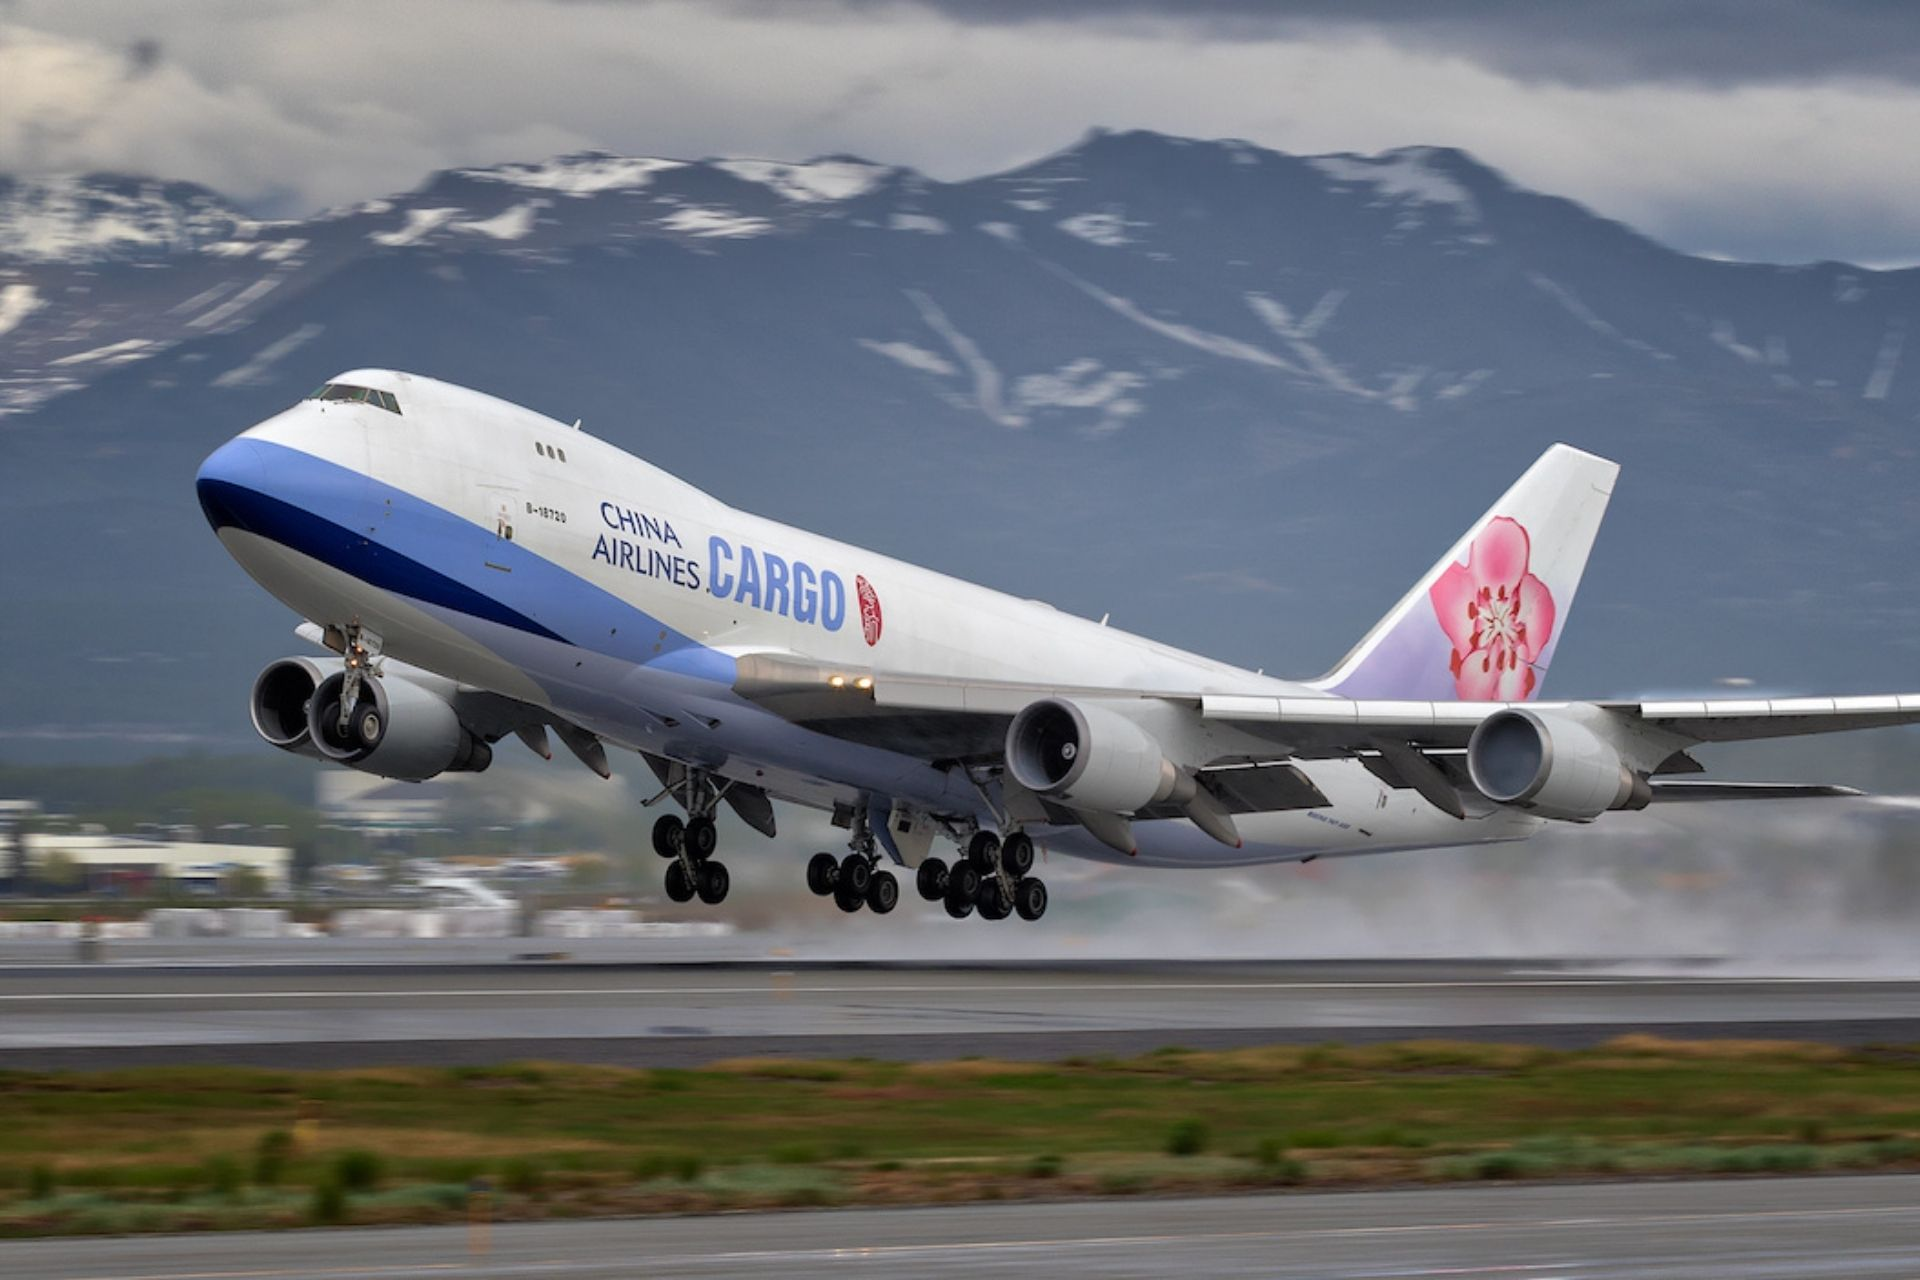 China Airlines plane 1